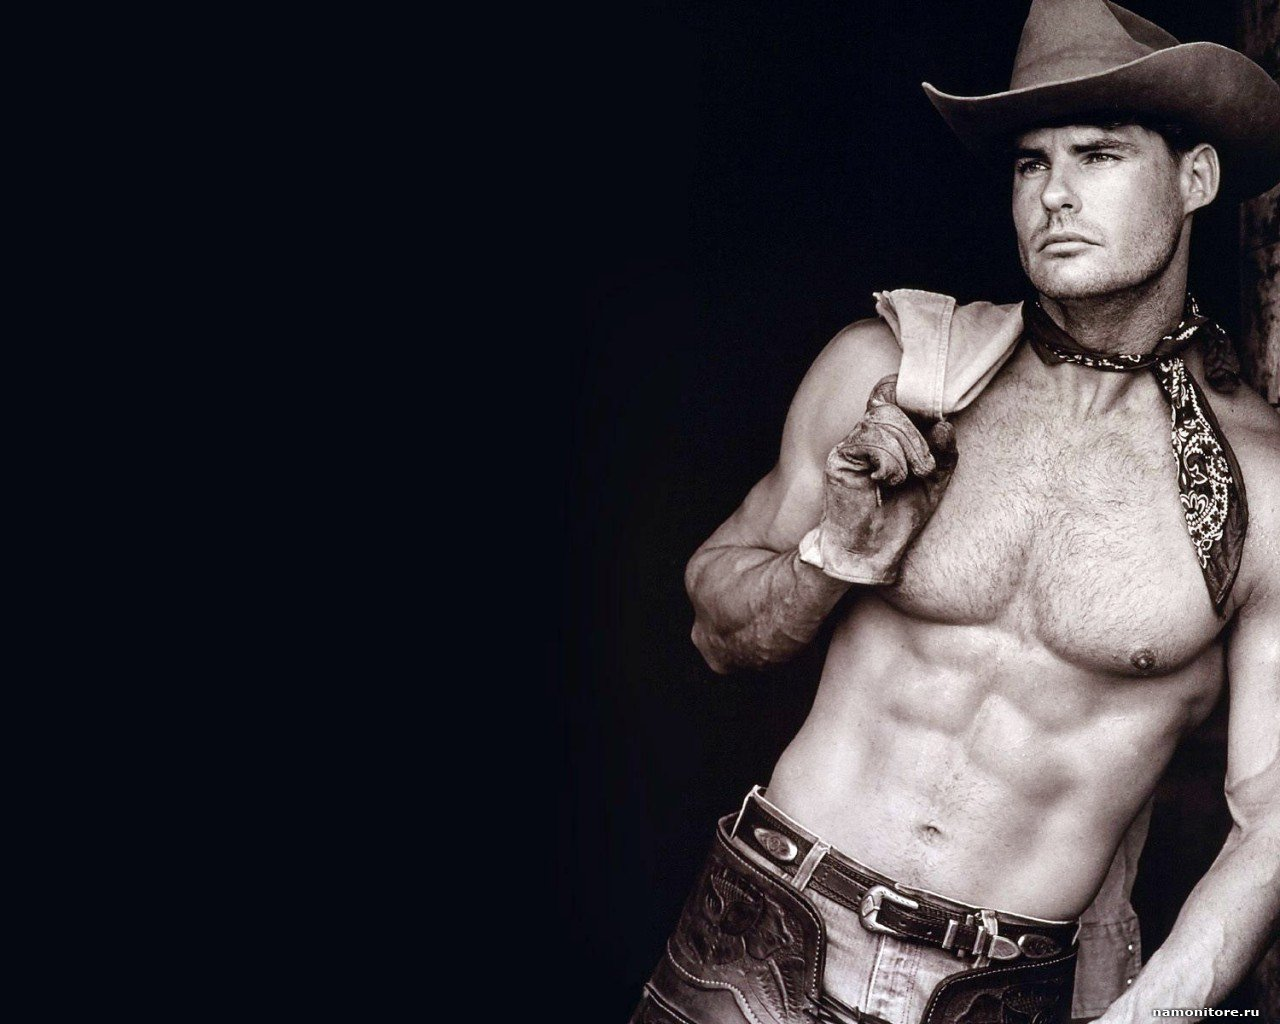 The Cowboy men 1280x1024   Wallpapers photografies photo wallpapers 1280x1024